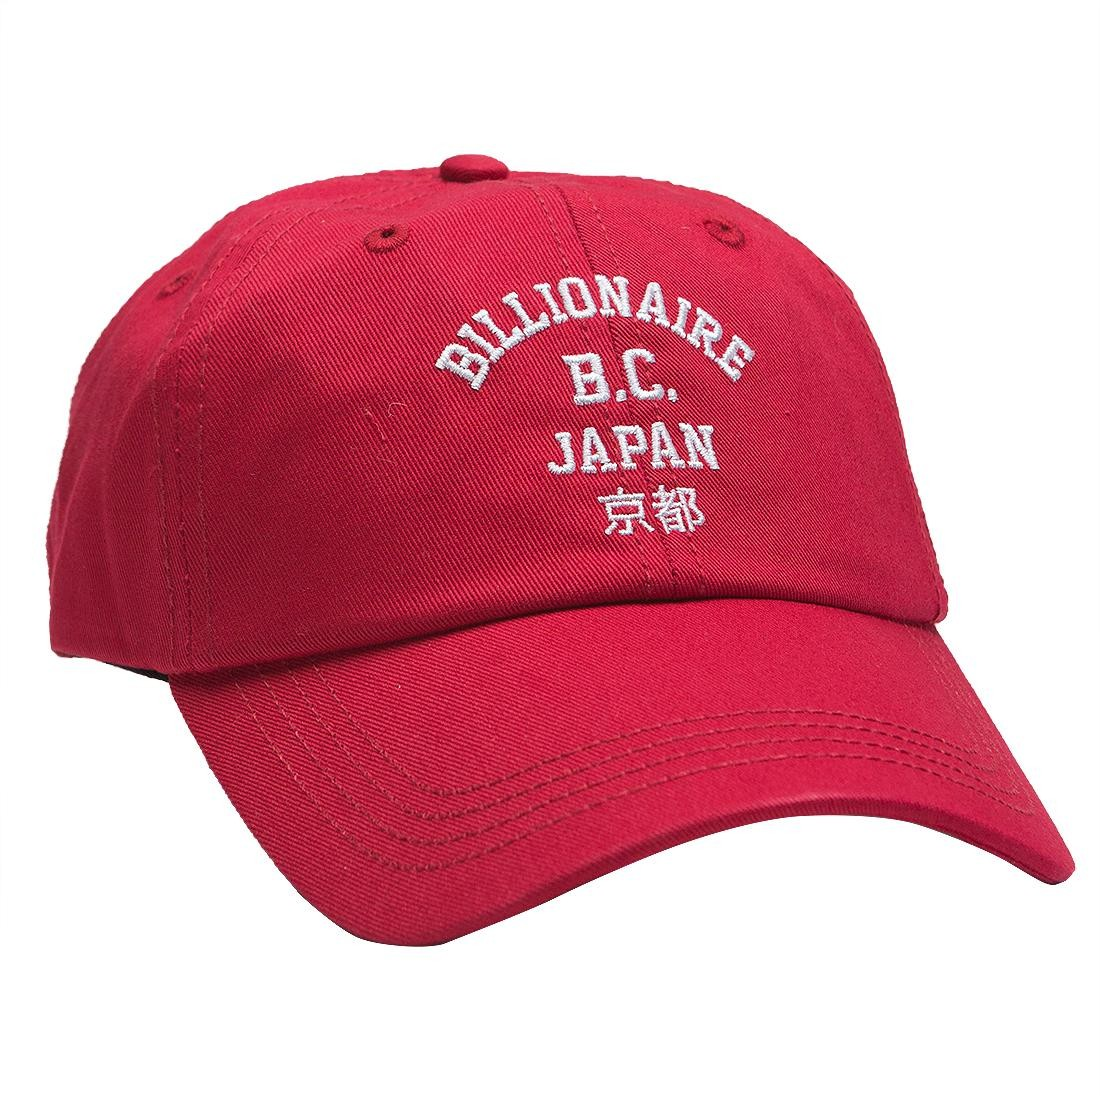 Billionaire Boys Club Japan Road Cap (red)